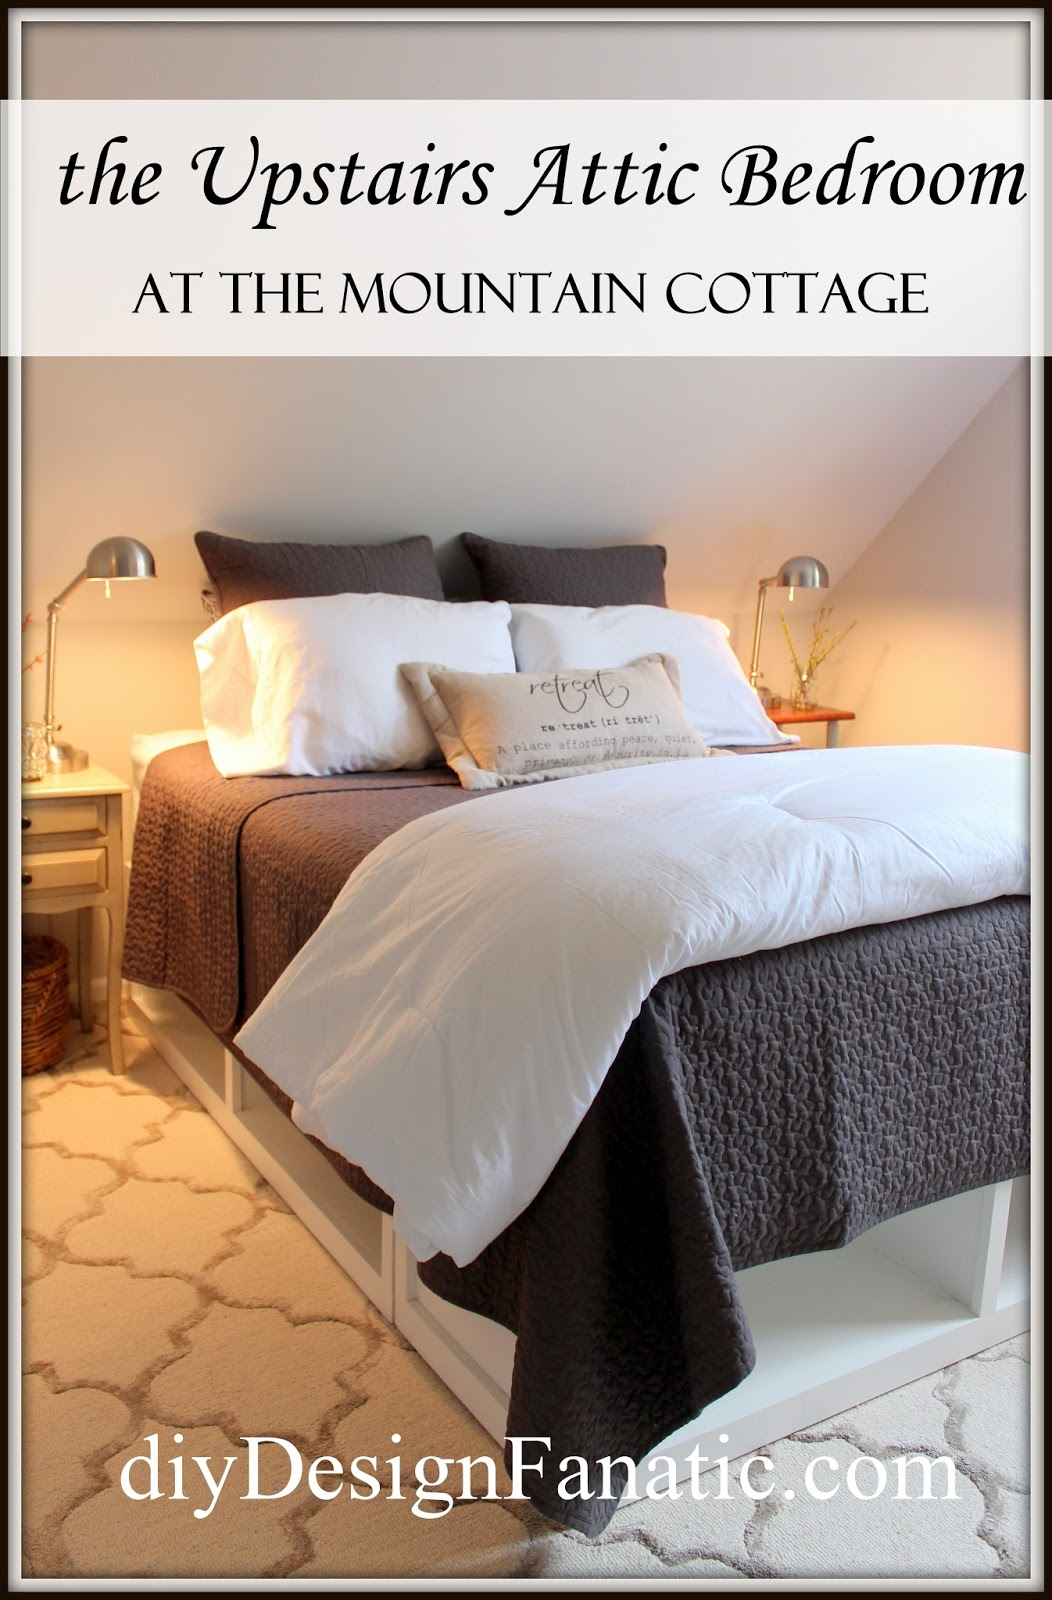 Diy design fanatic mountain cottage before and afters for Upstairs bedroom ideas